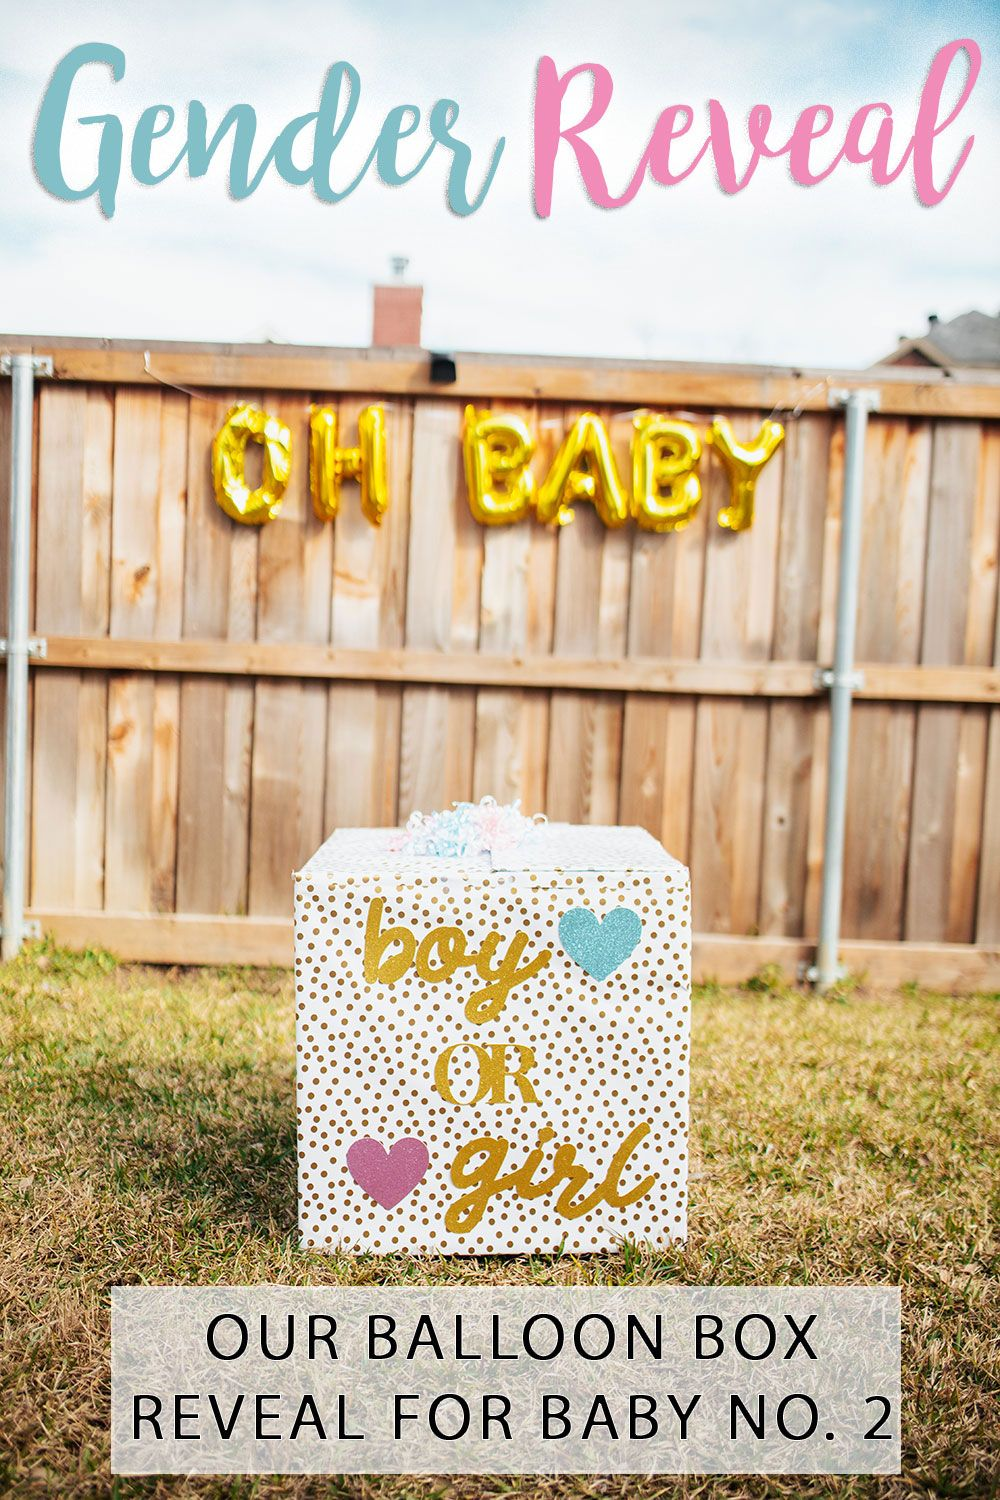 Gender Reveal Box Diy And Details From Our Gender Reveal Party Gender Reveal Box Gender Reveal Balloon Box Gender Reveal Balloon Box Diy